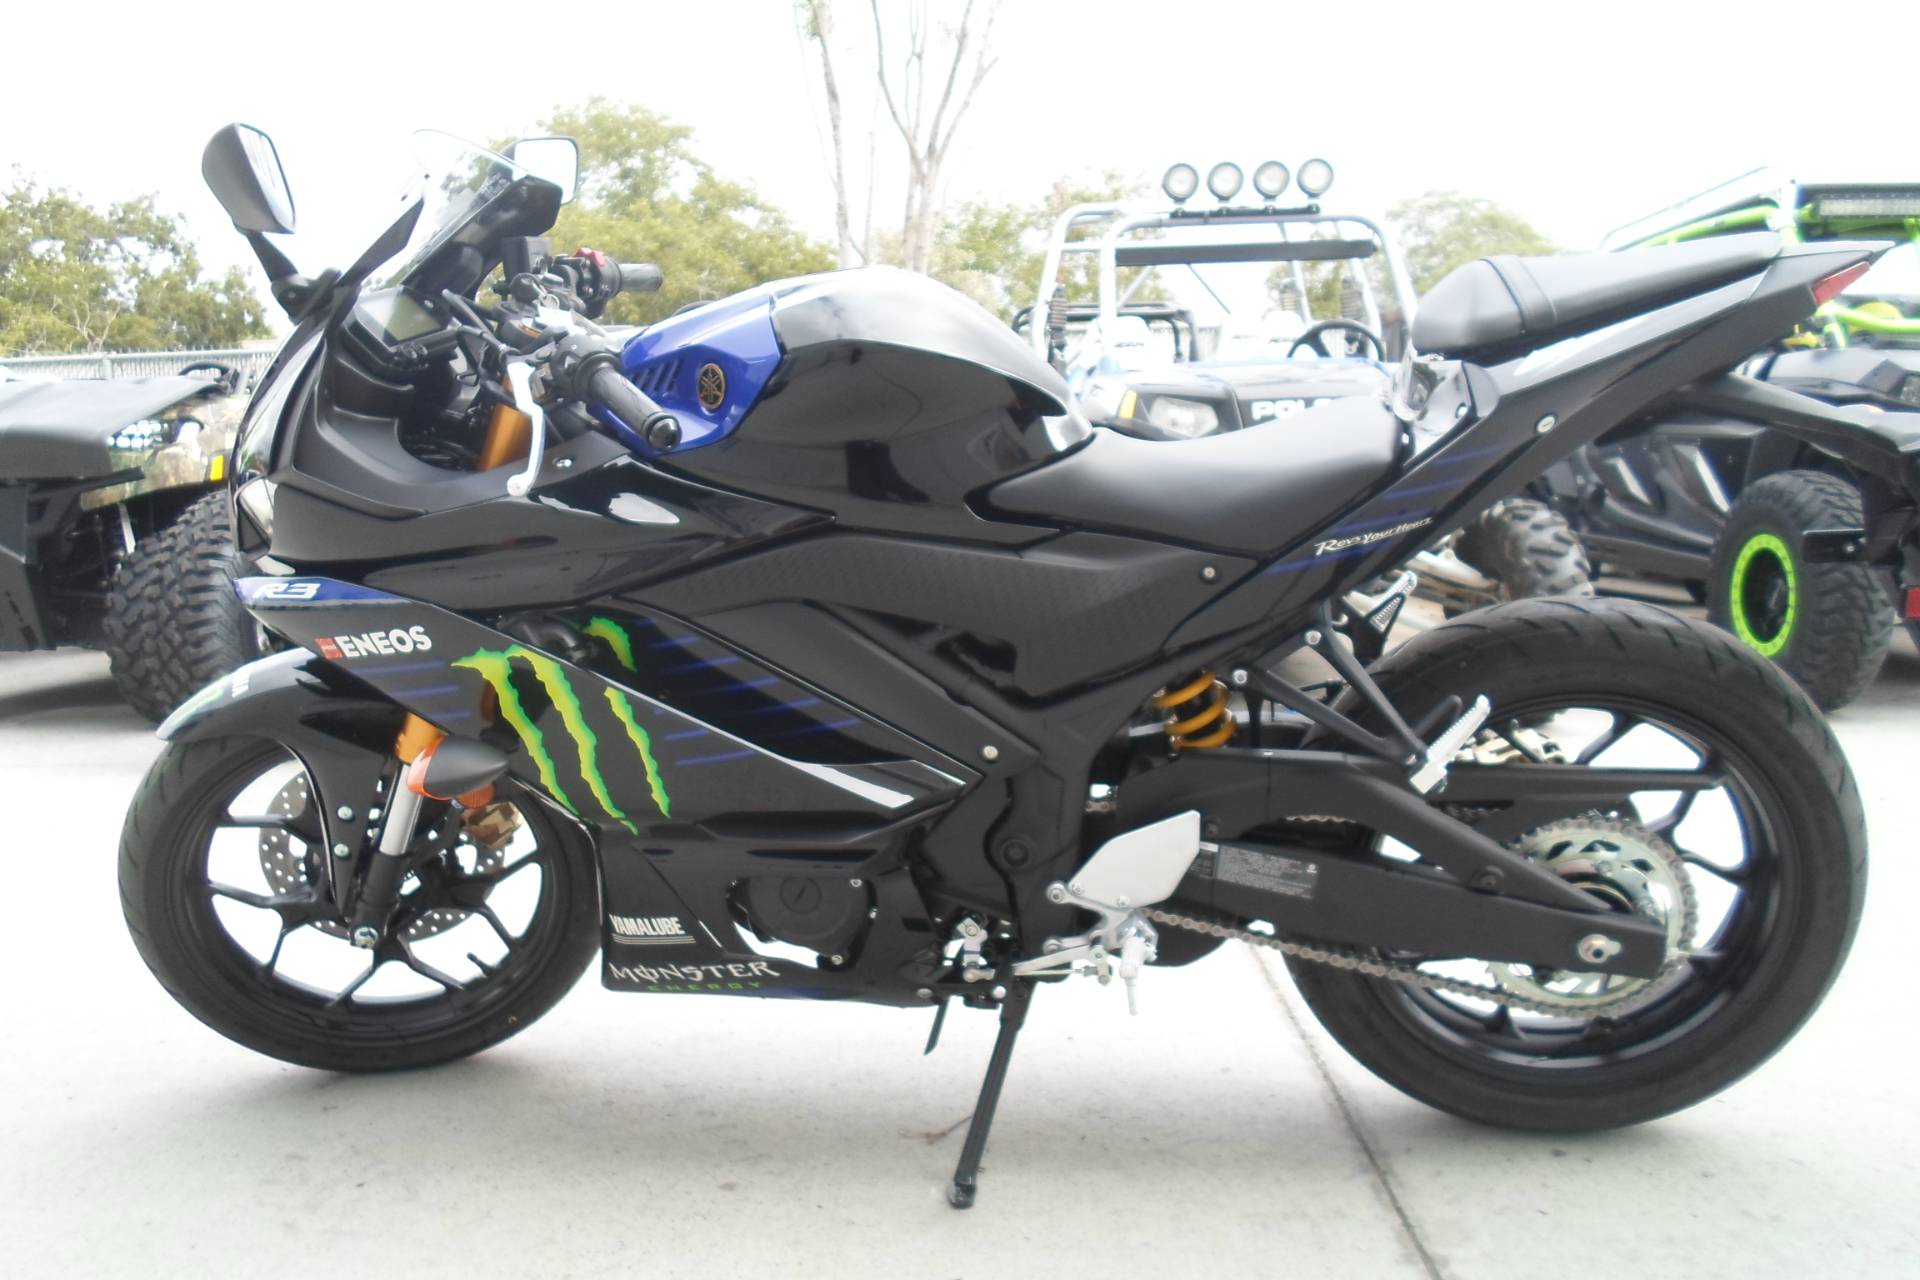 2020 yamaha yzf-r3 abs monster energy yamaha motogp edition.